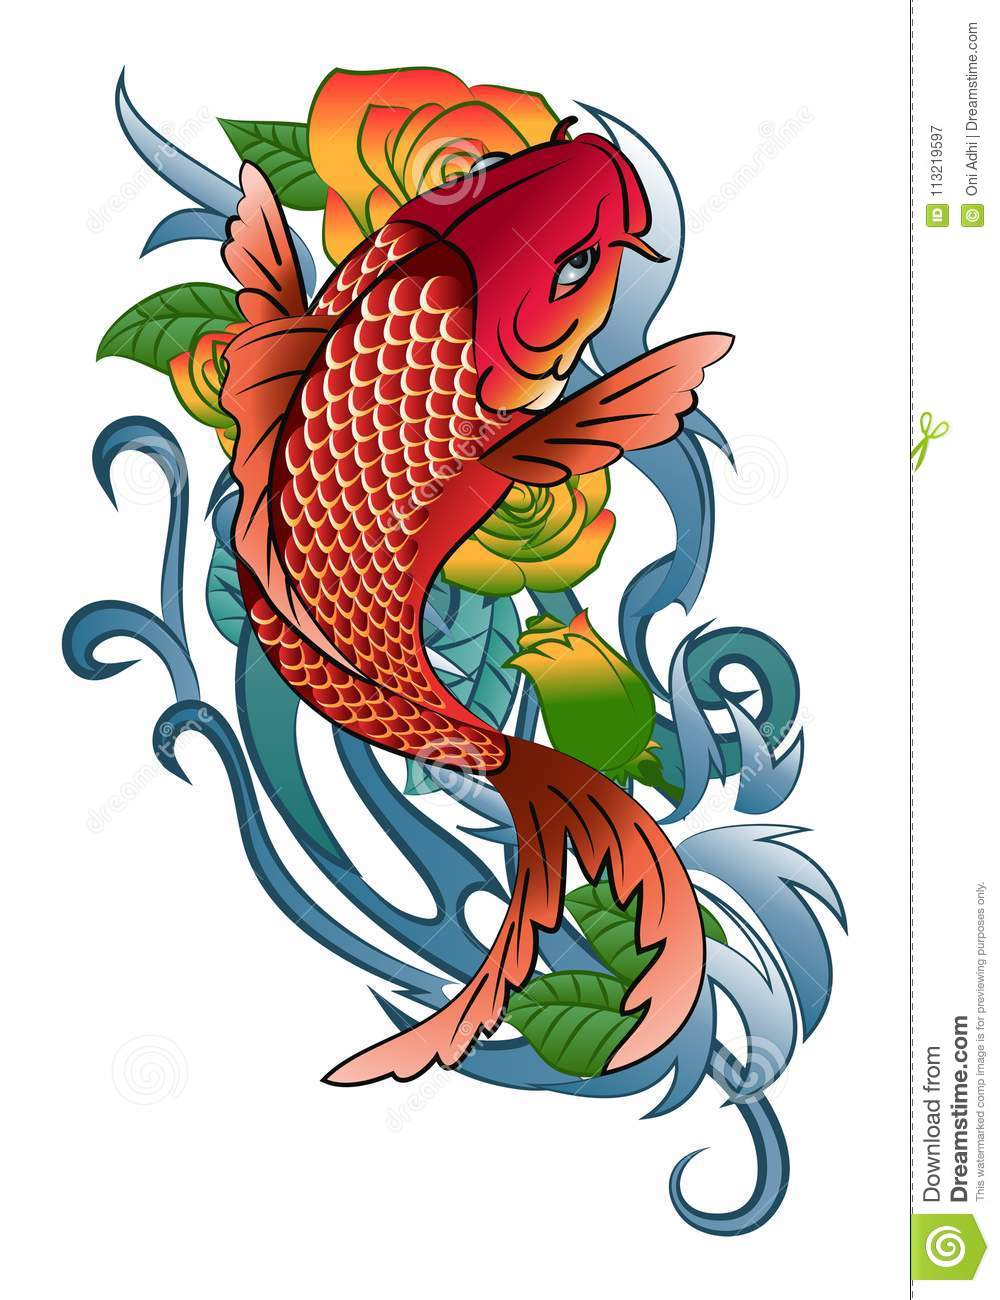 Koi fish jump tattoo stock vector. Illustration of marine - 113219597